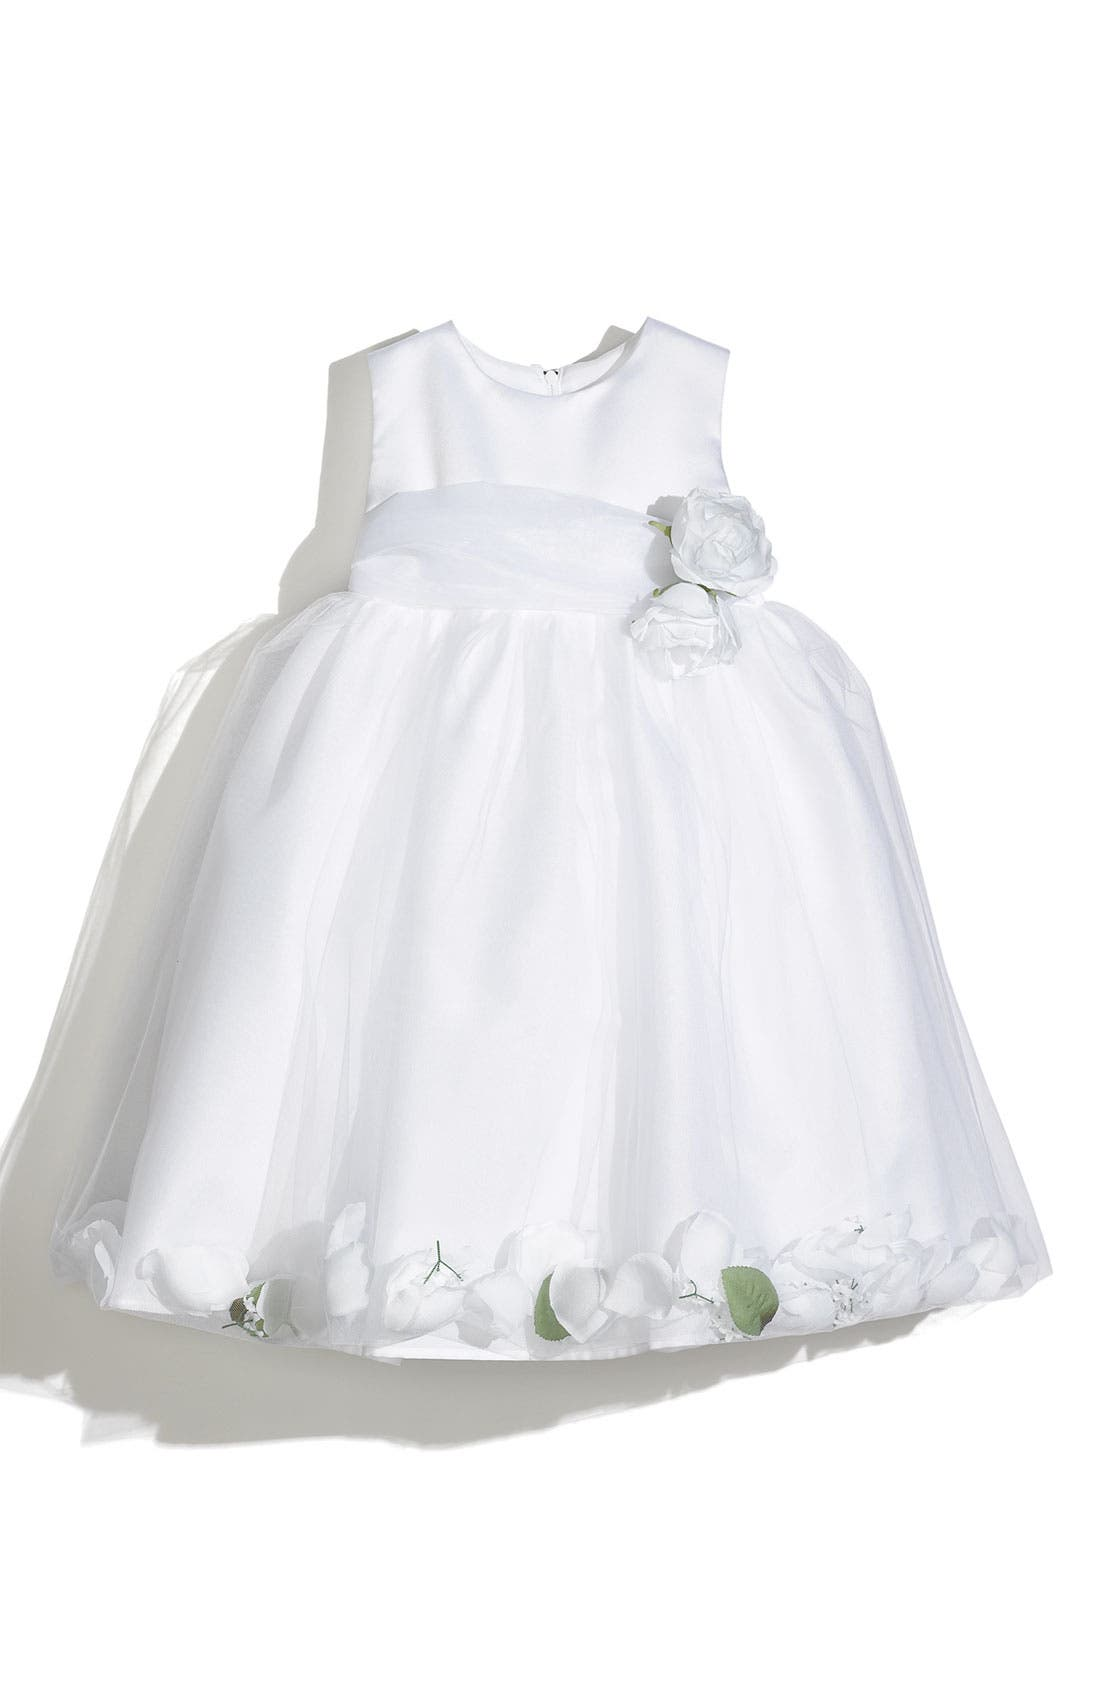 Alternate Image 1 Selected - Us Angels Petal Dress (Toddler Girls, Little Girls & Big Girls)